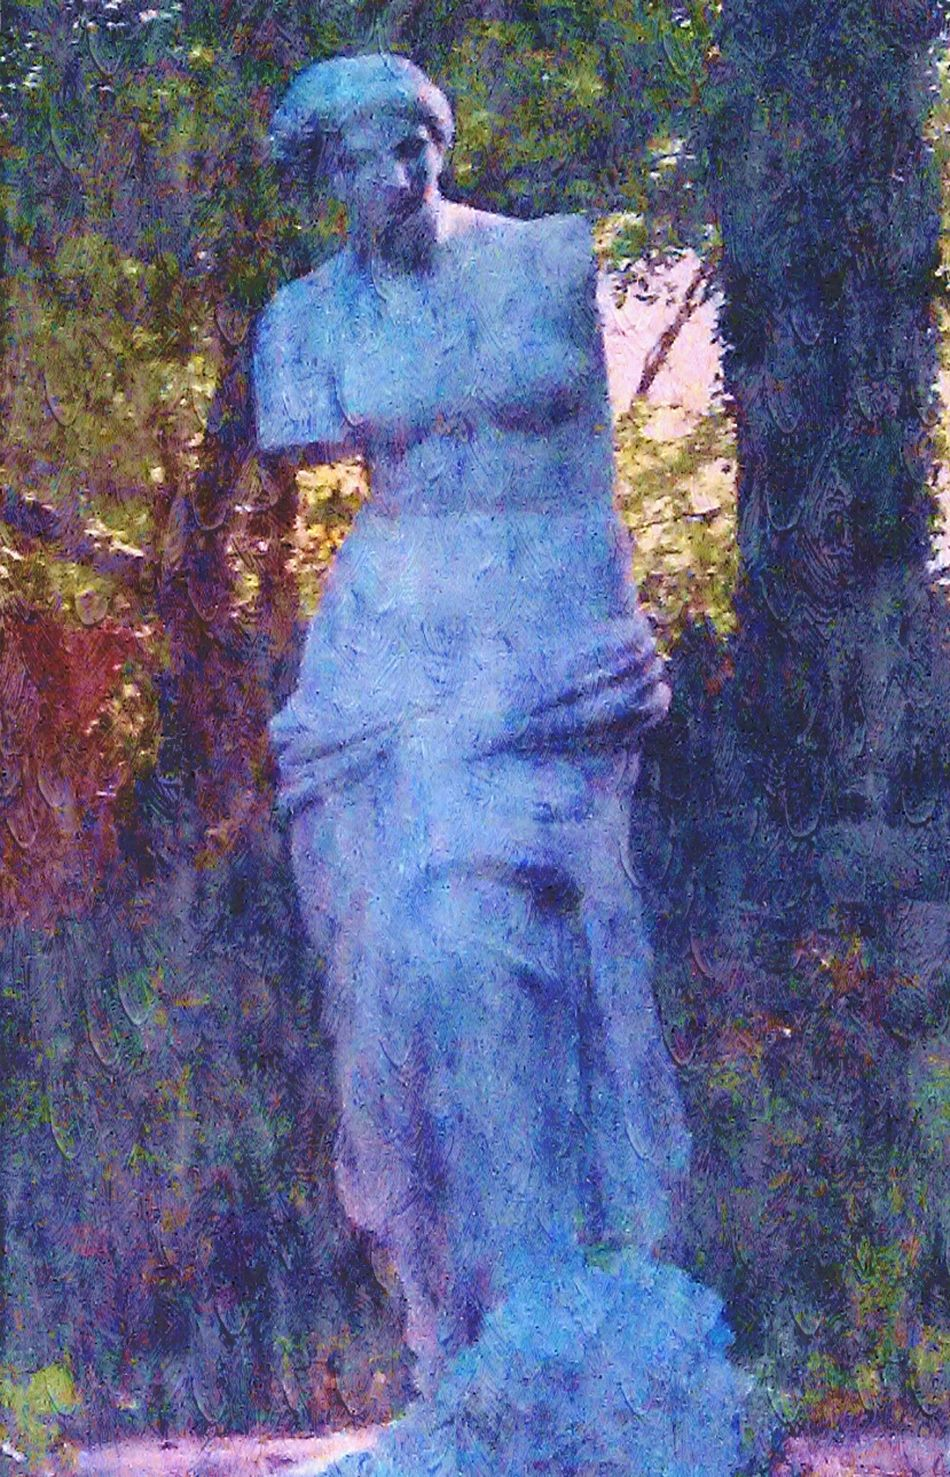 Jasmine Hill Gardens Azelia Gardens Gardenscapes Stone Statue Wetumpka, AL Venus Check This Out Photo Editing Oil Painting Photograph Showcase: February Things I Like